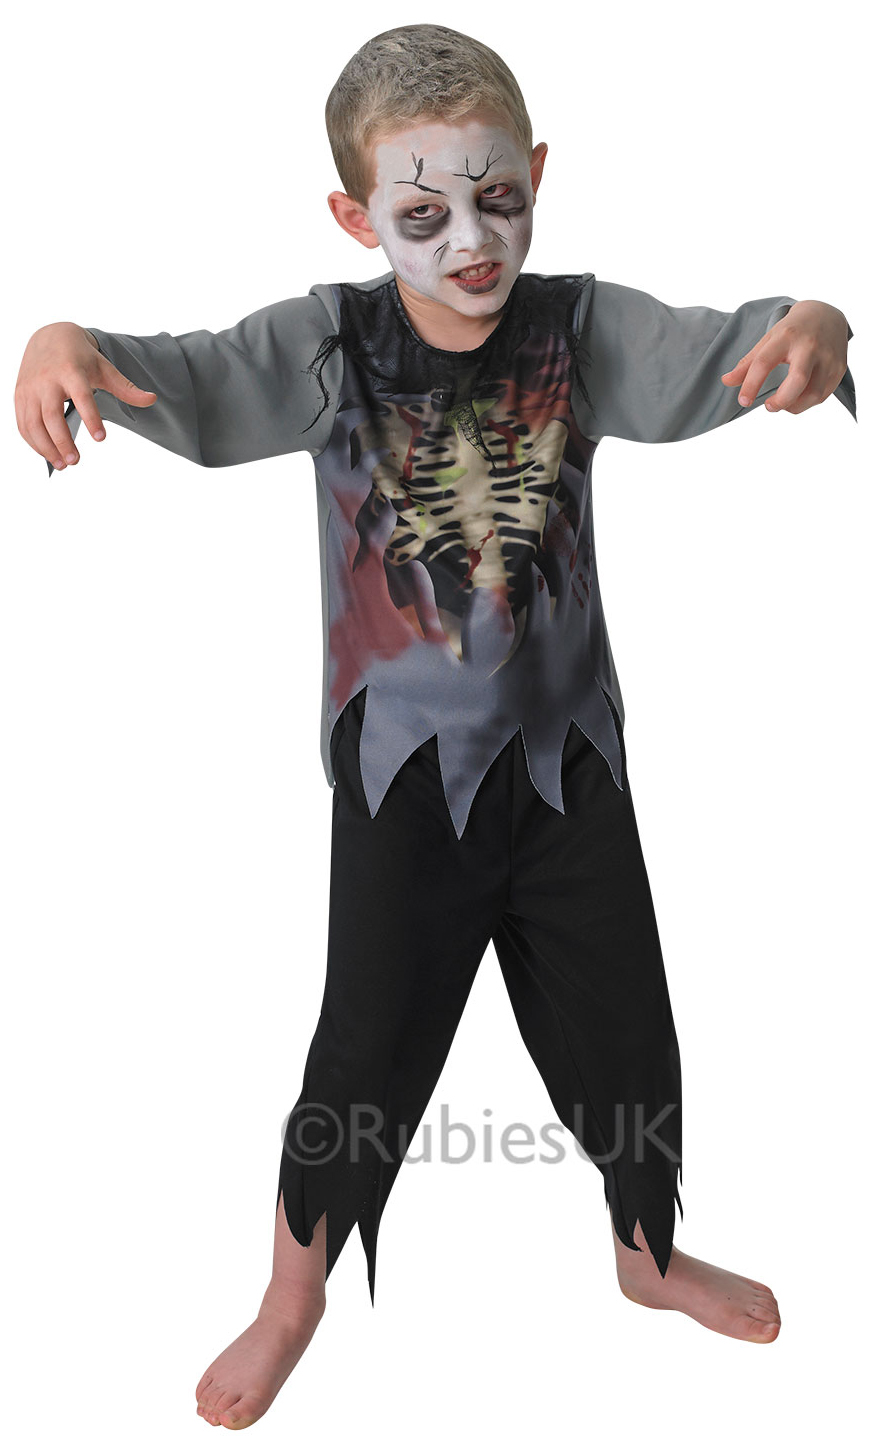 Childs Zombie Boy Costume